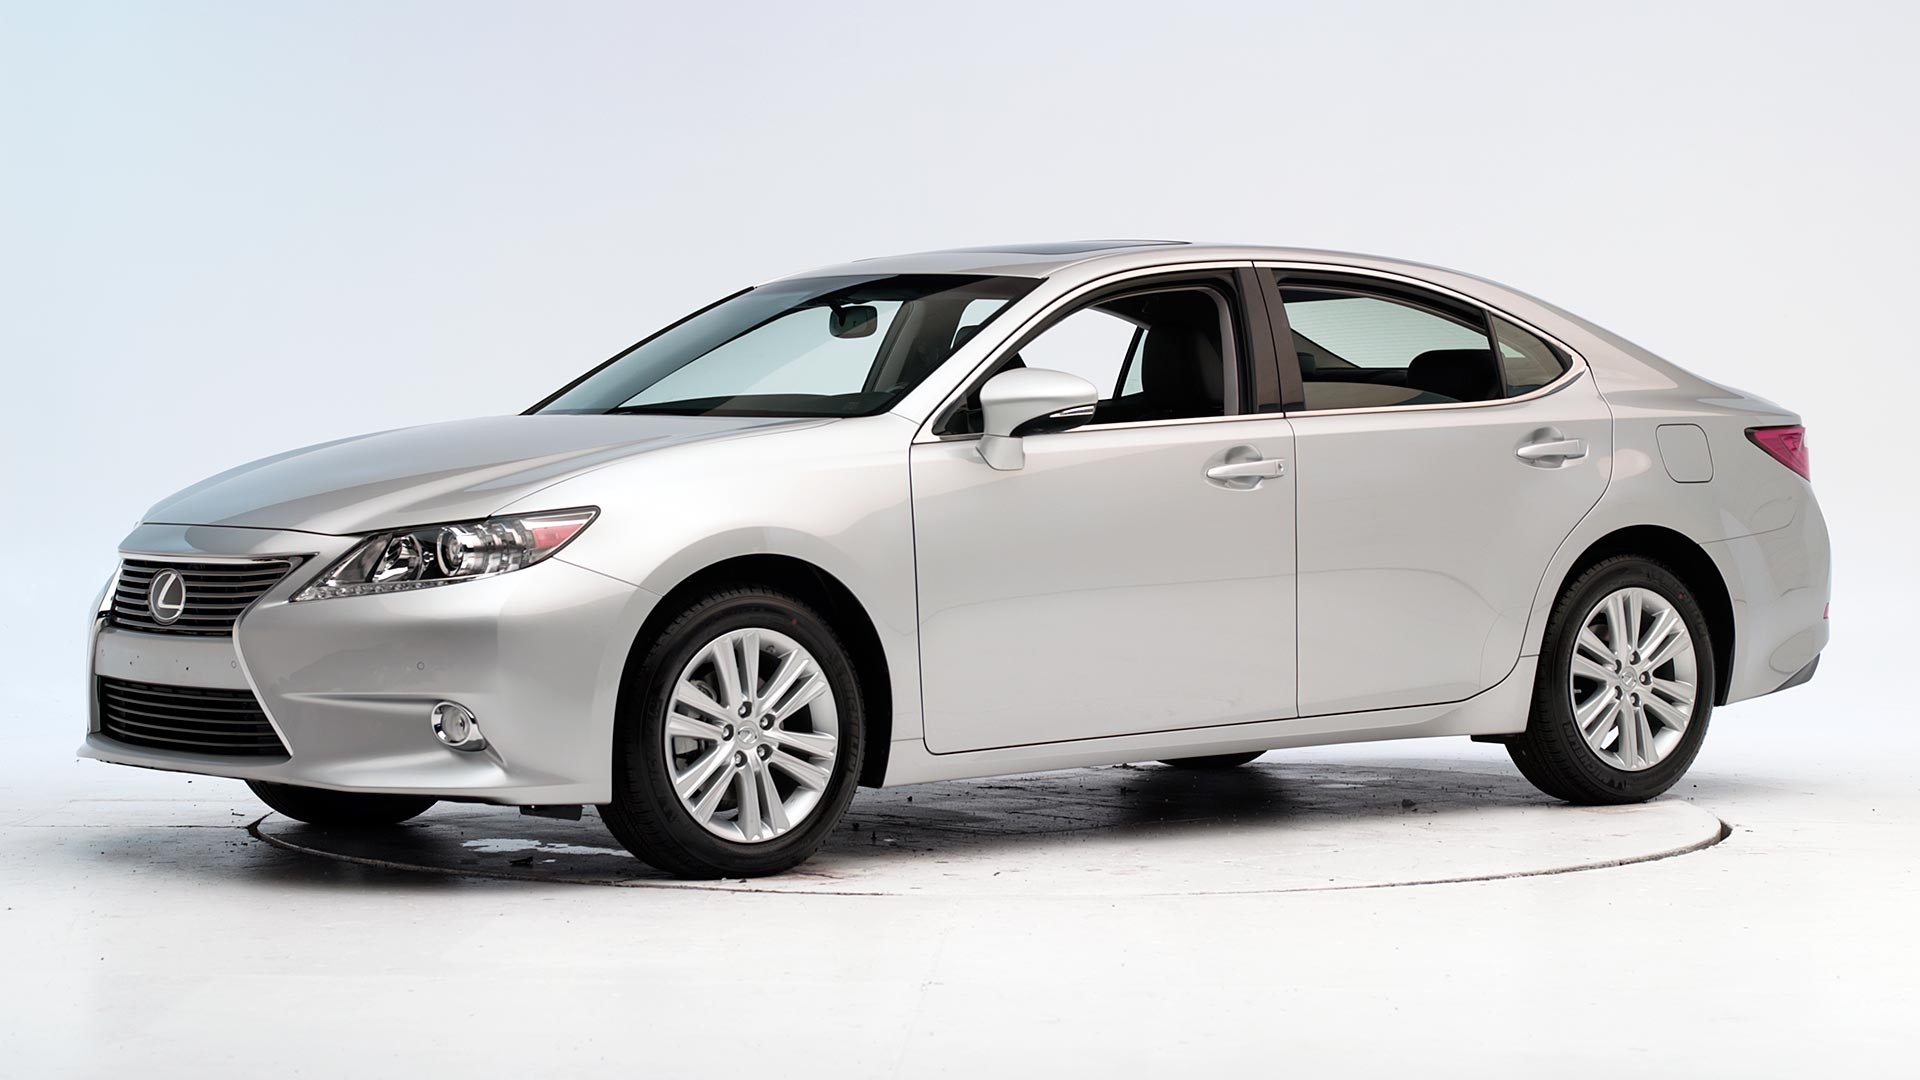 2014 Lexus ES 350 4-door sedan